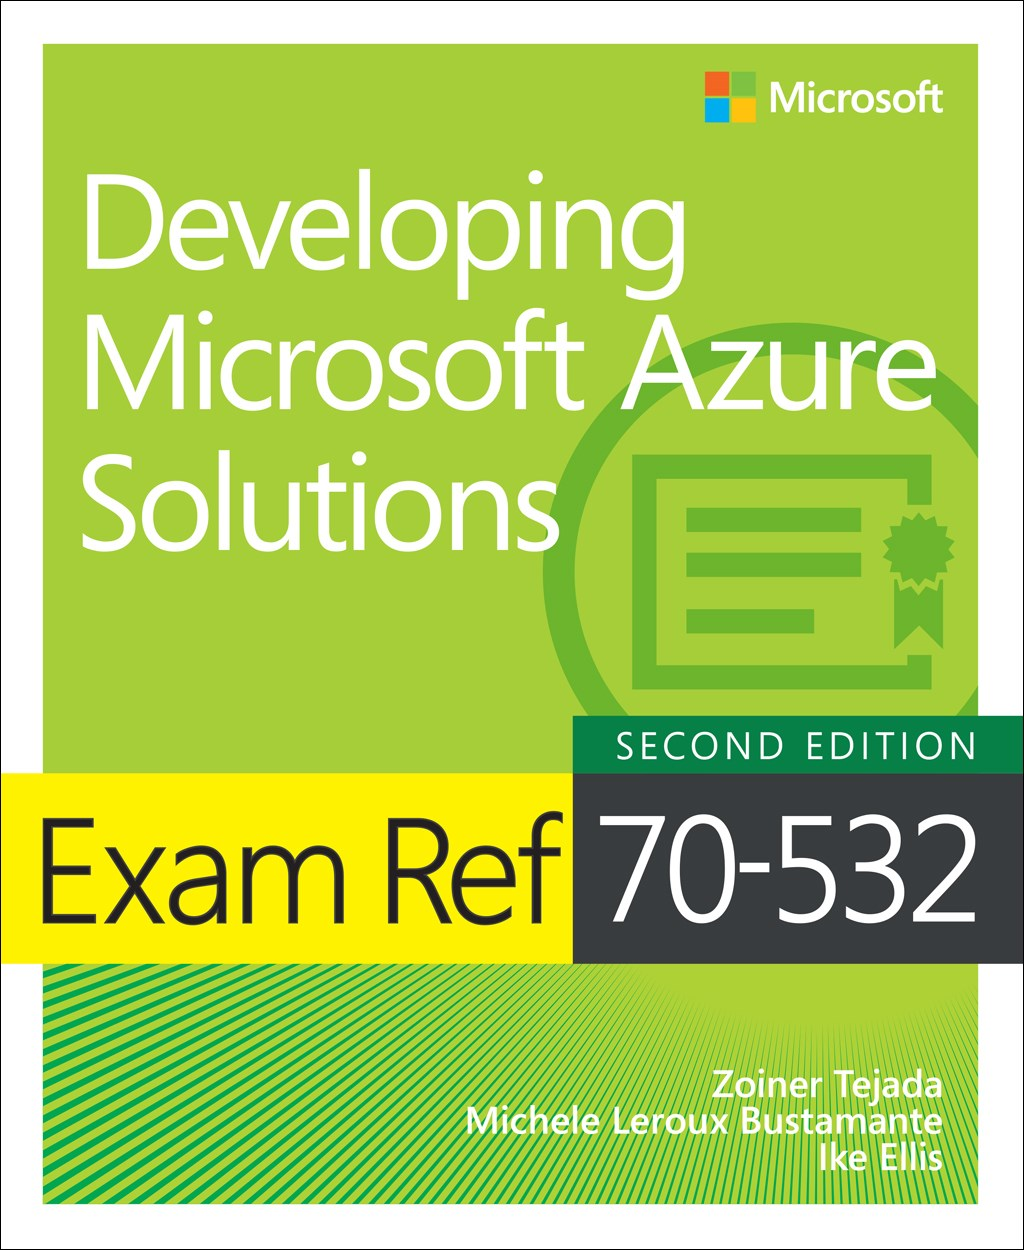 Exam Ref 70-532 Developing Microsoft Azure Solutions, 2nd Edition.